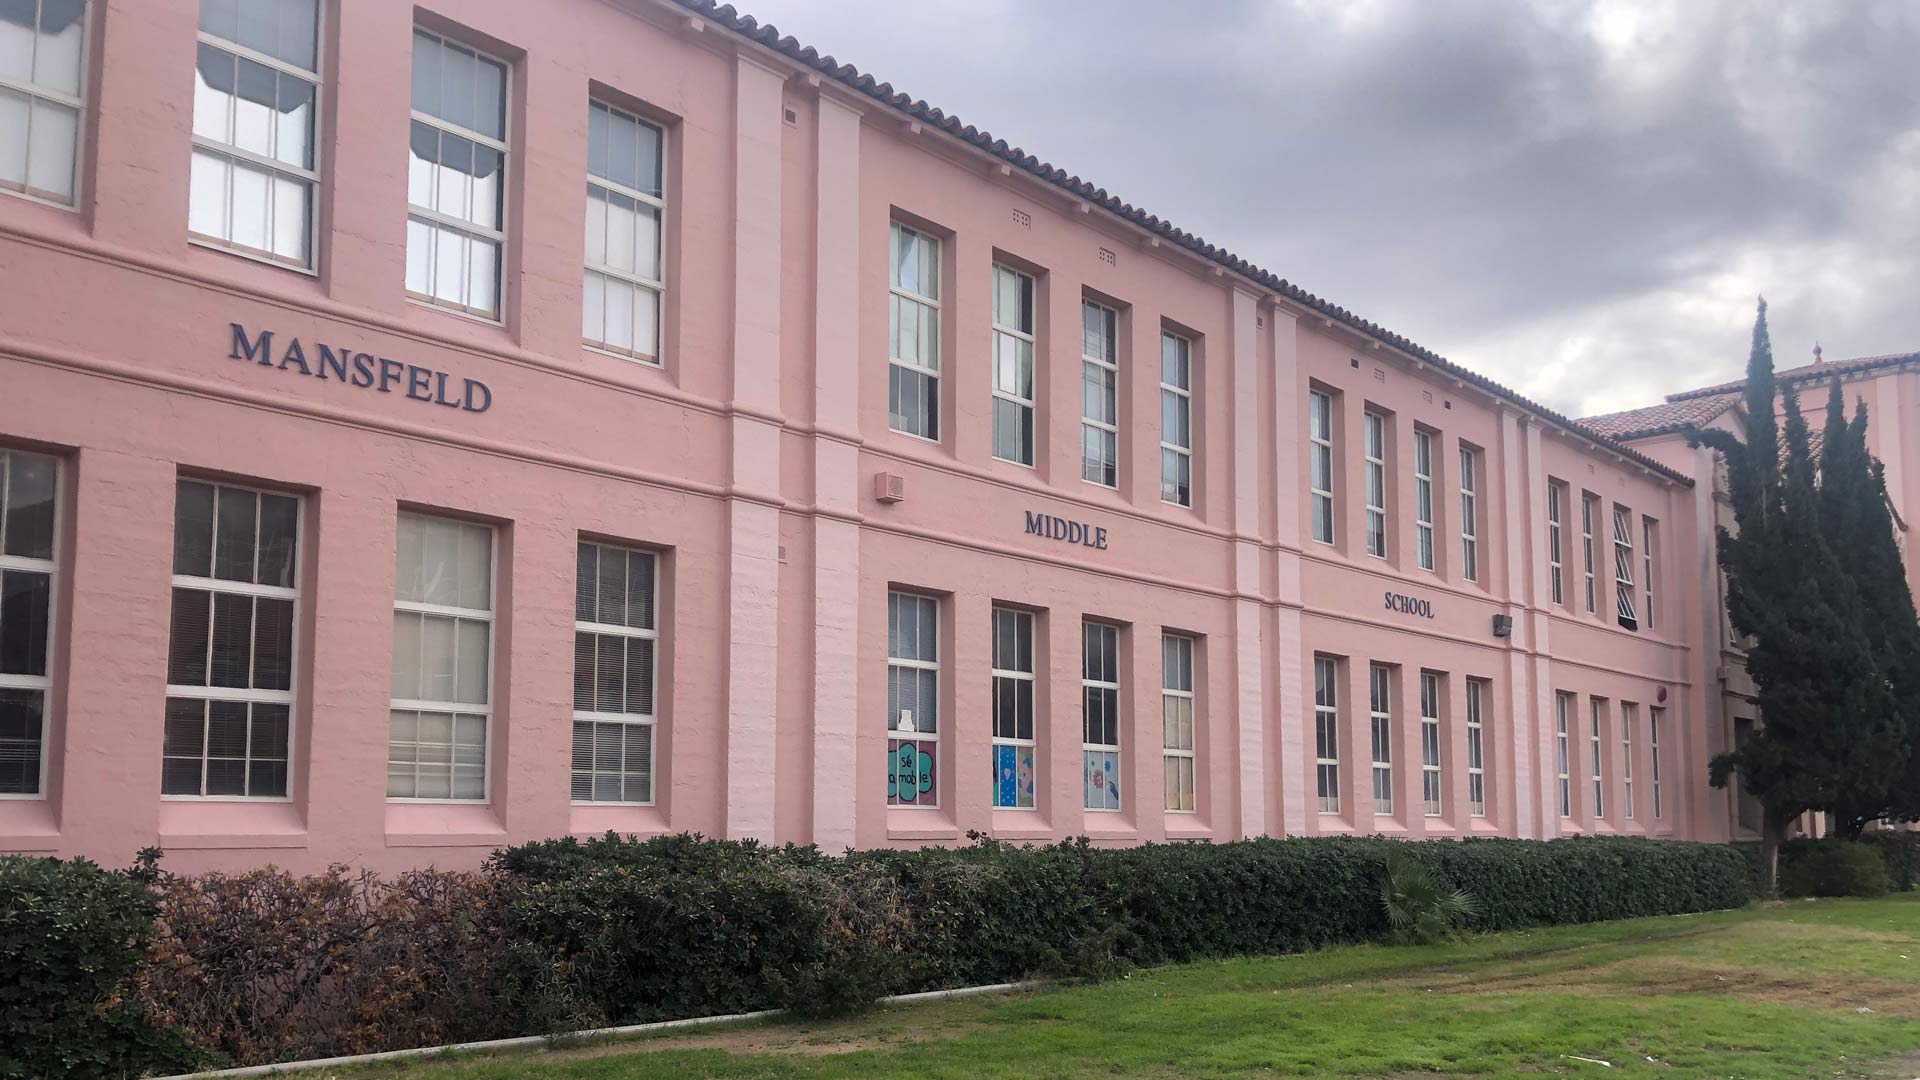 Mansfeld Middle Magnet School is one of 17 TUSD schools receiving AzMERIT results-based funding in 2020.